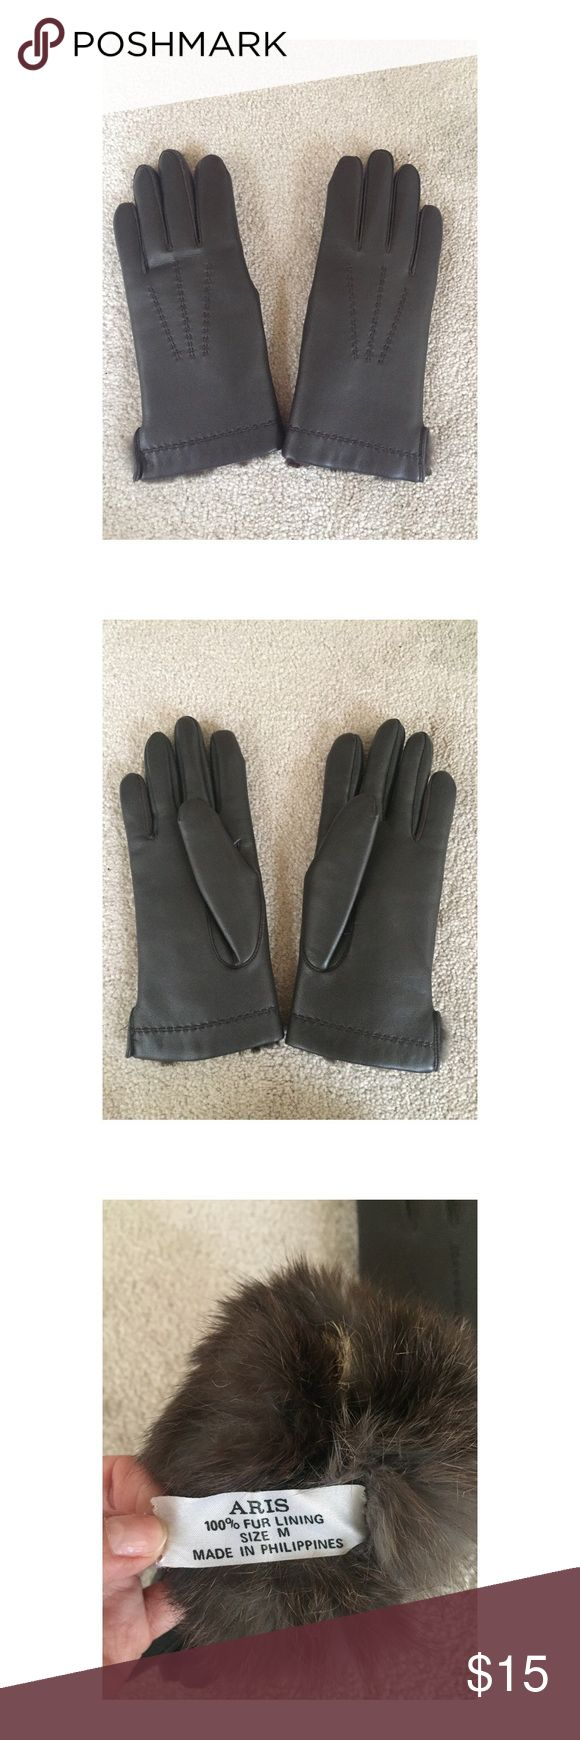 Driving gloves for sale philippines - Brown Leather Fur Lined Gloves